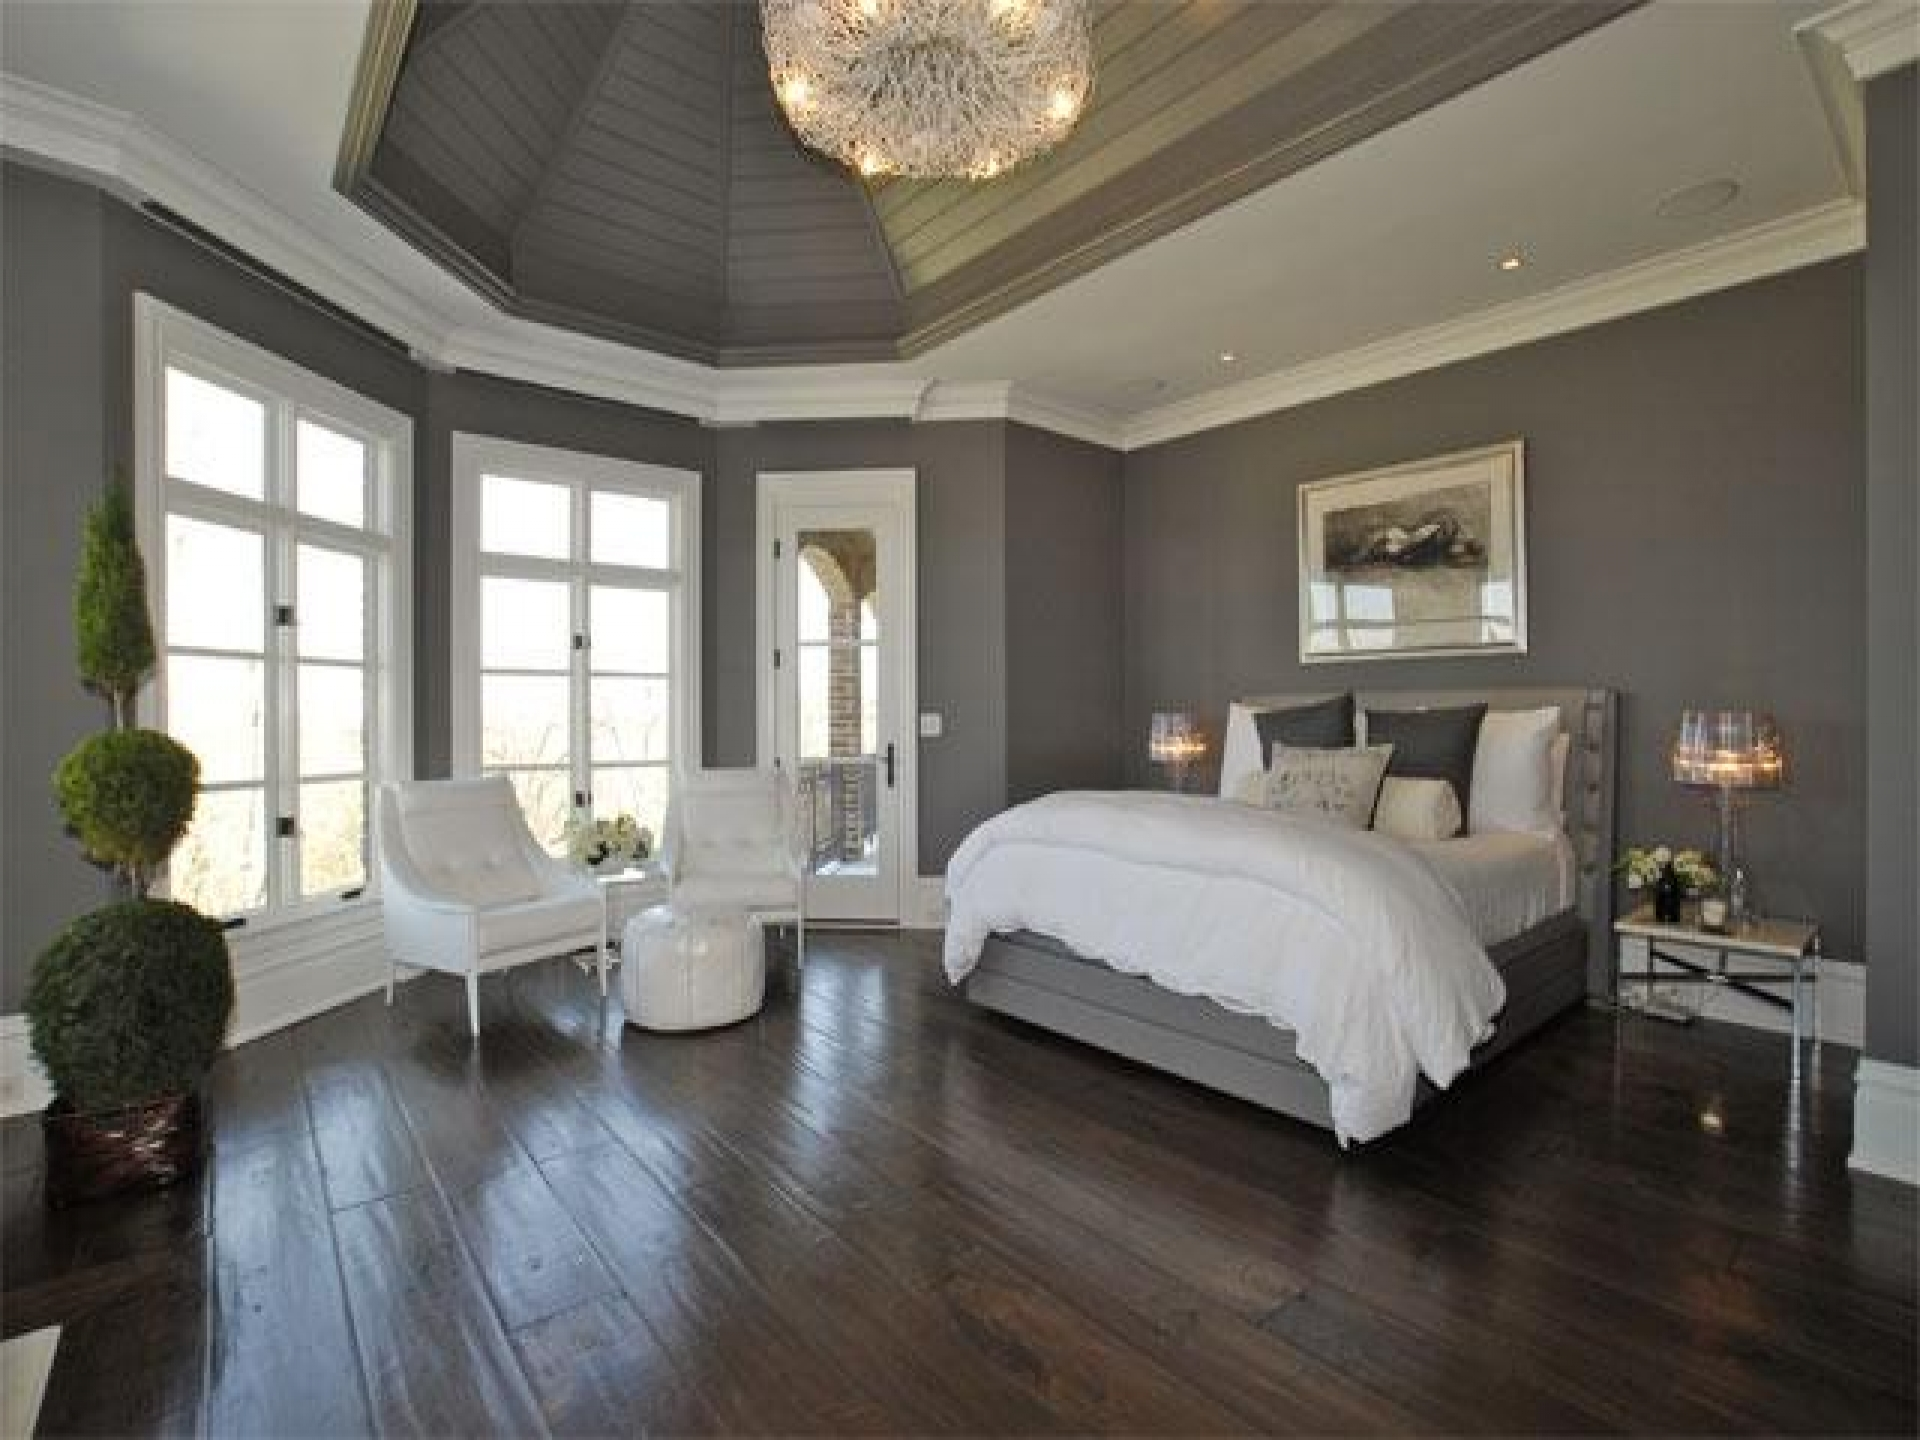 Living Room Design Designs With Dark Wood Grey Bedroom Set Atmosphere Ideas Small Fireplaces Best Contemporary Traditional Bathroom Kitchen Apppie Org